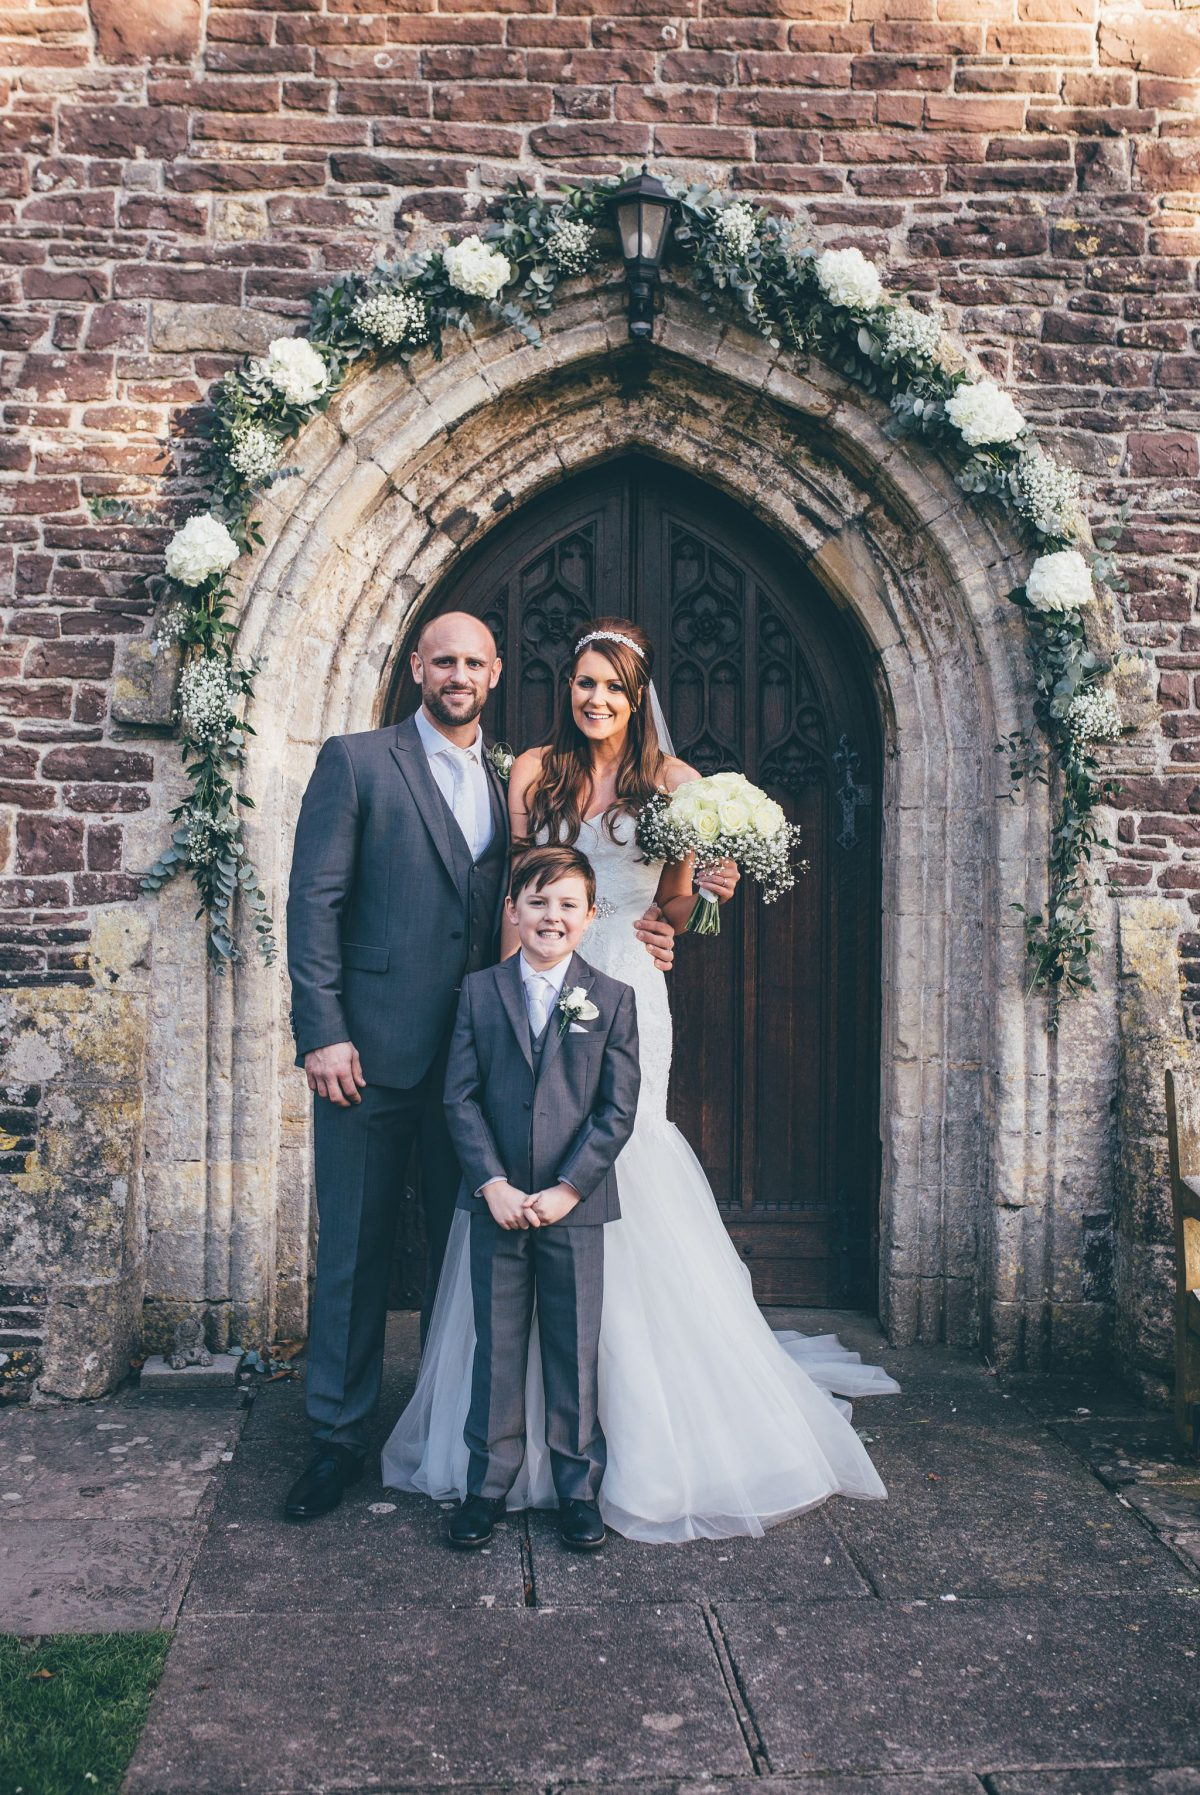 welsh_wedding_photographer_rachel_lambert_photography_decourceys_cardiff_rhiannon_gavin_ 34